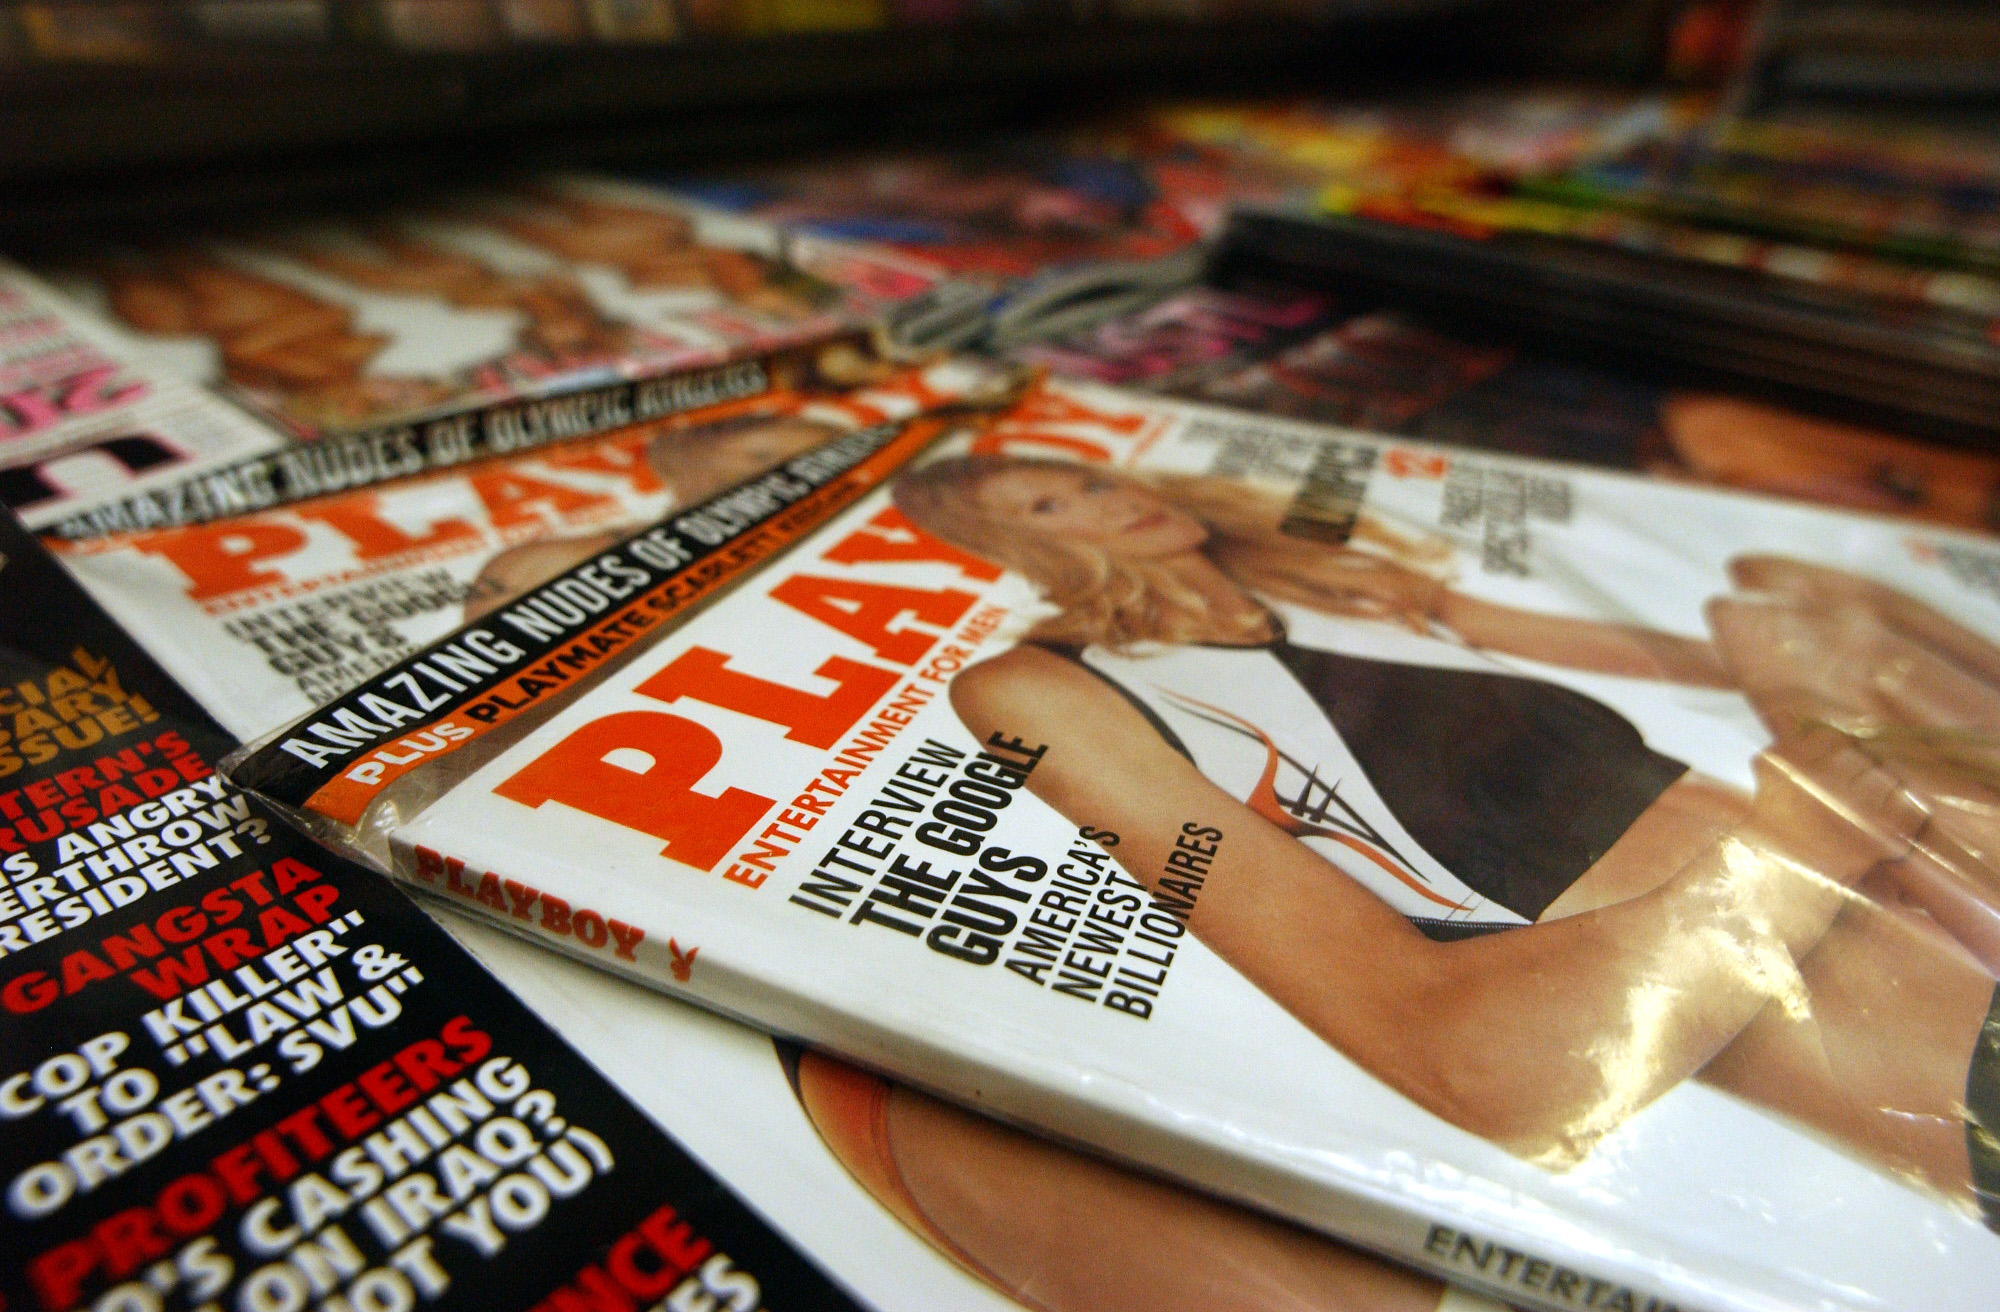 Playboy magazine featuring an article on Google is seen at a